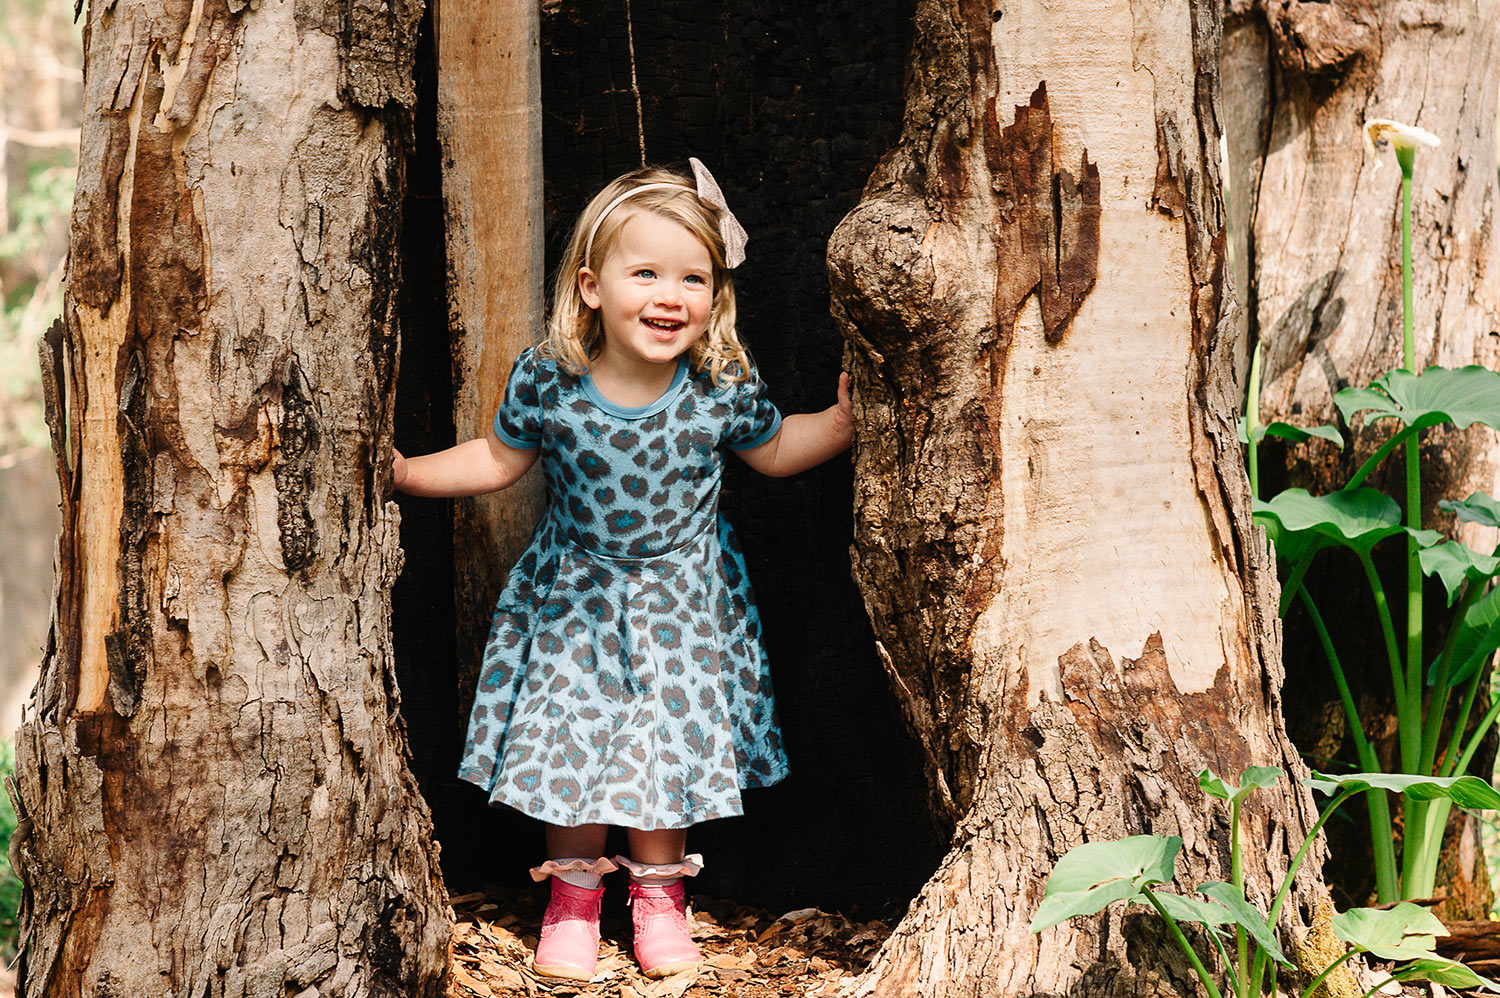 Girl poking cheekily out of a tree in the forest